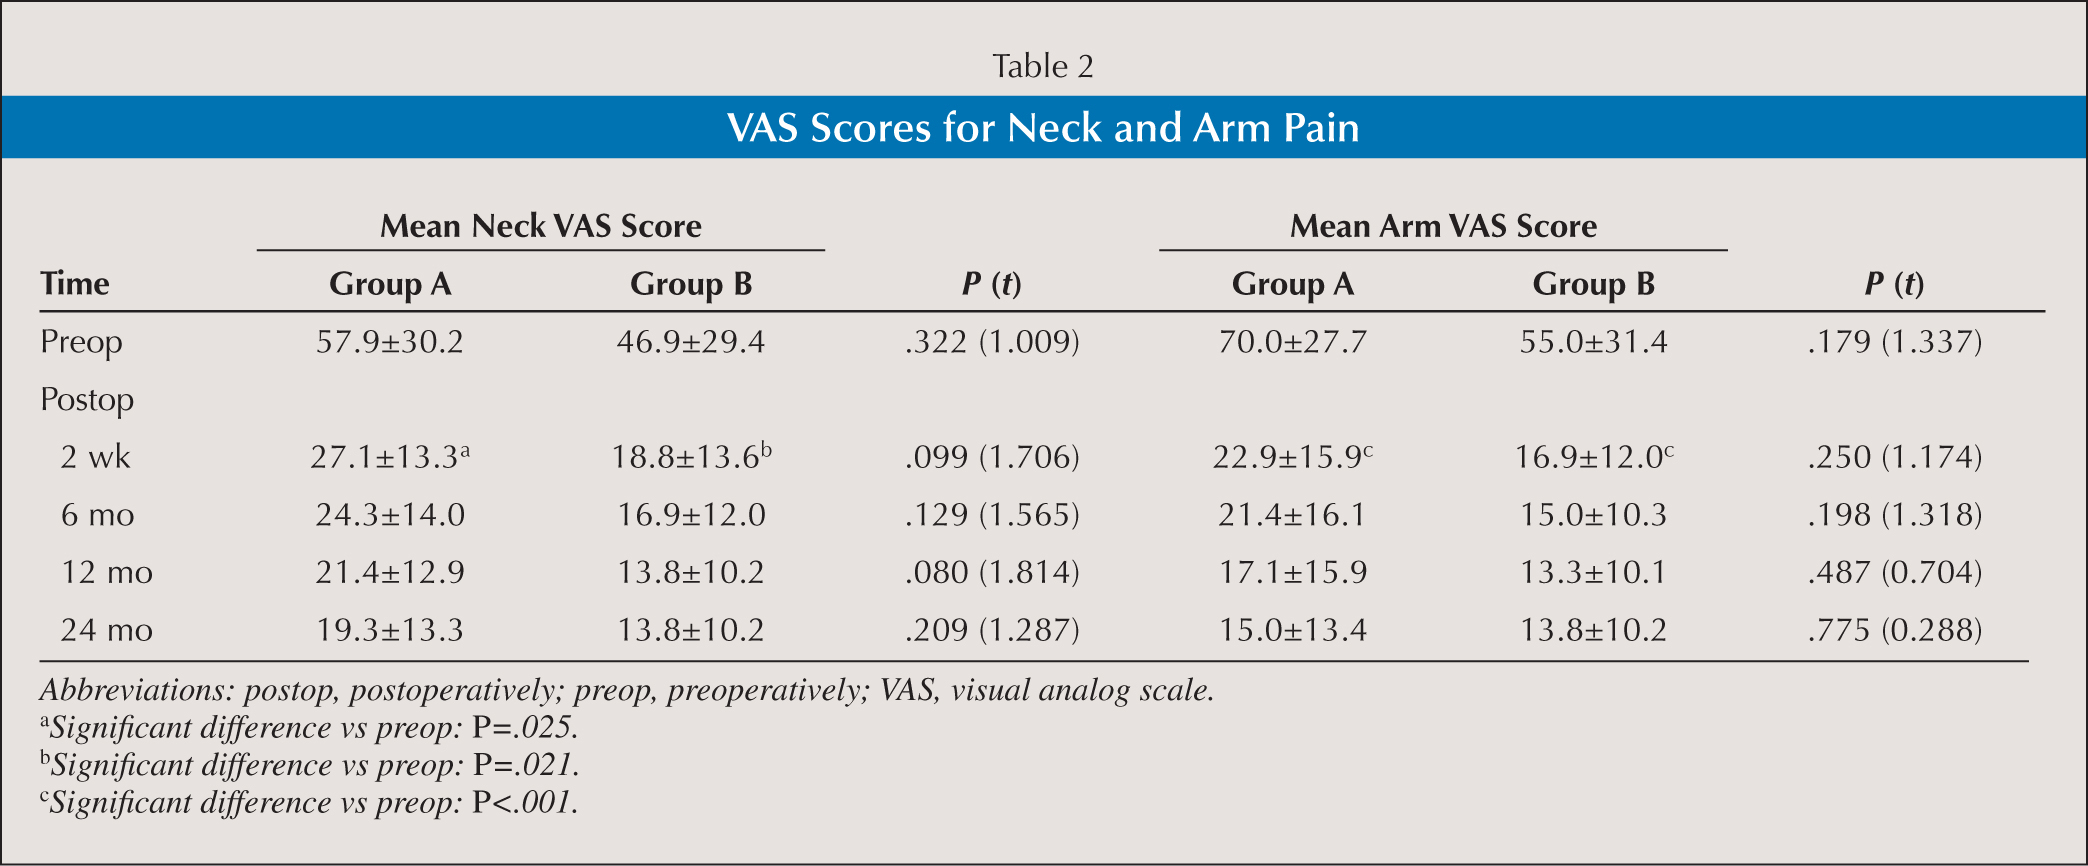 VAS Scores for Neck and Arm Pain